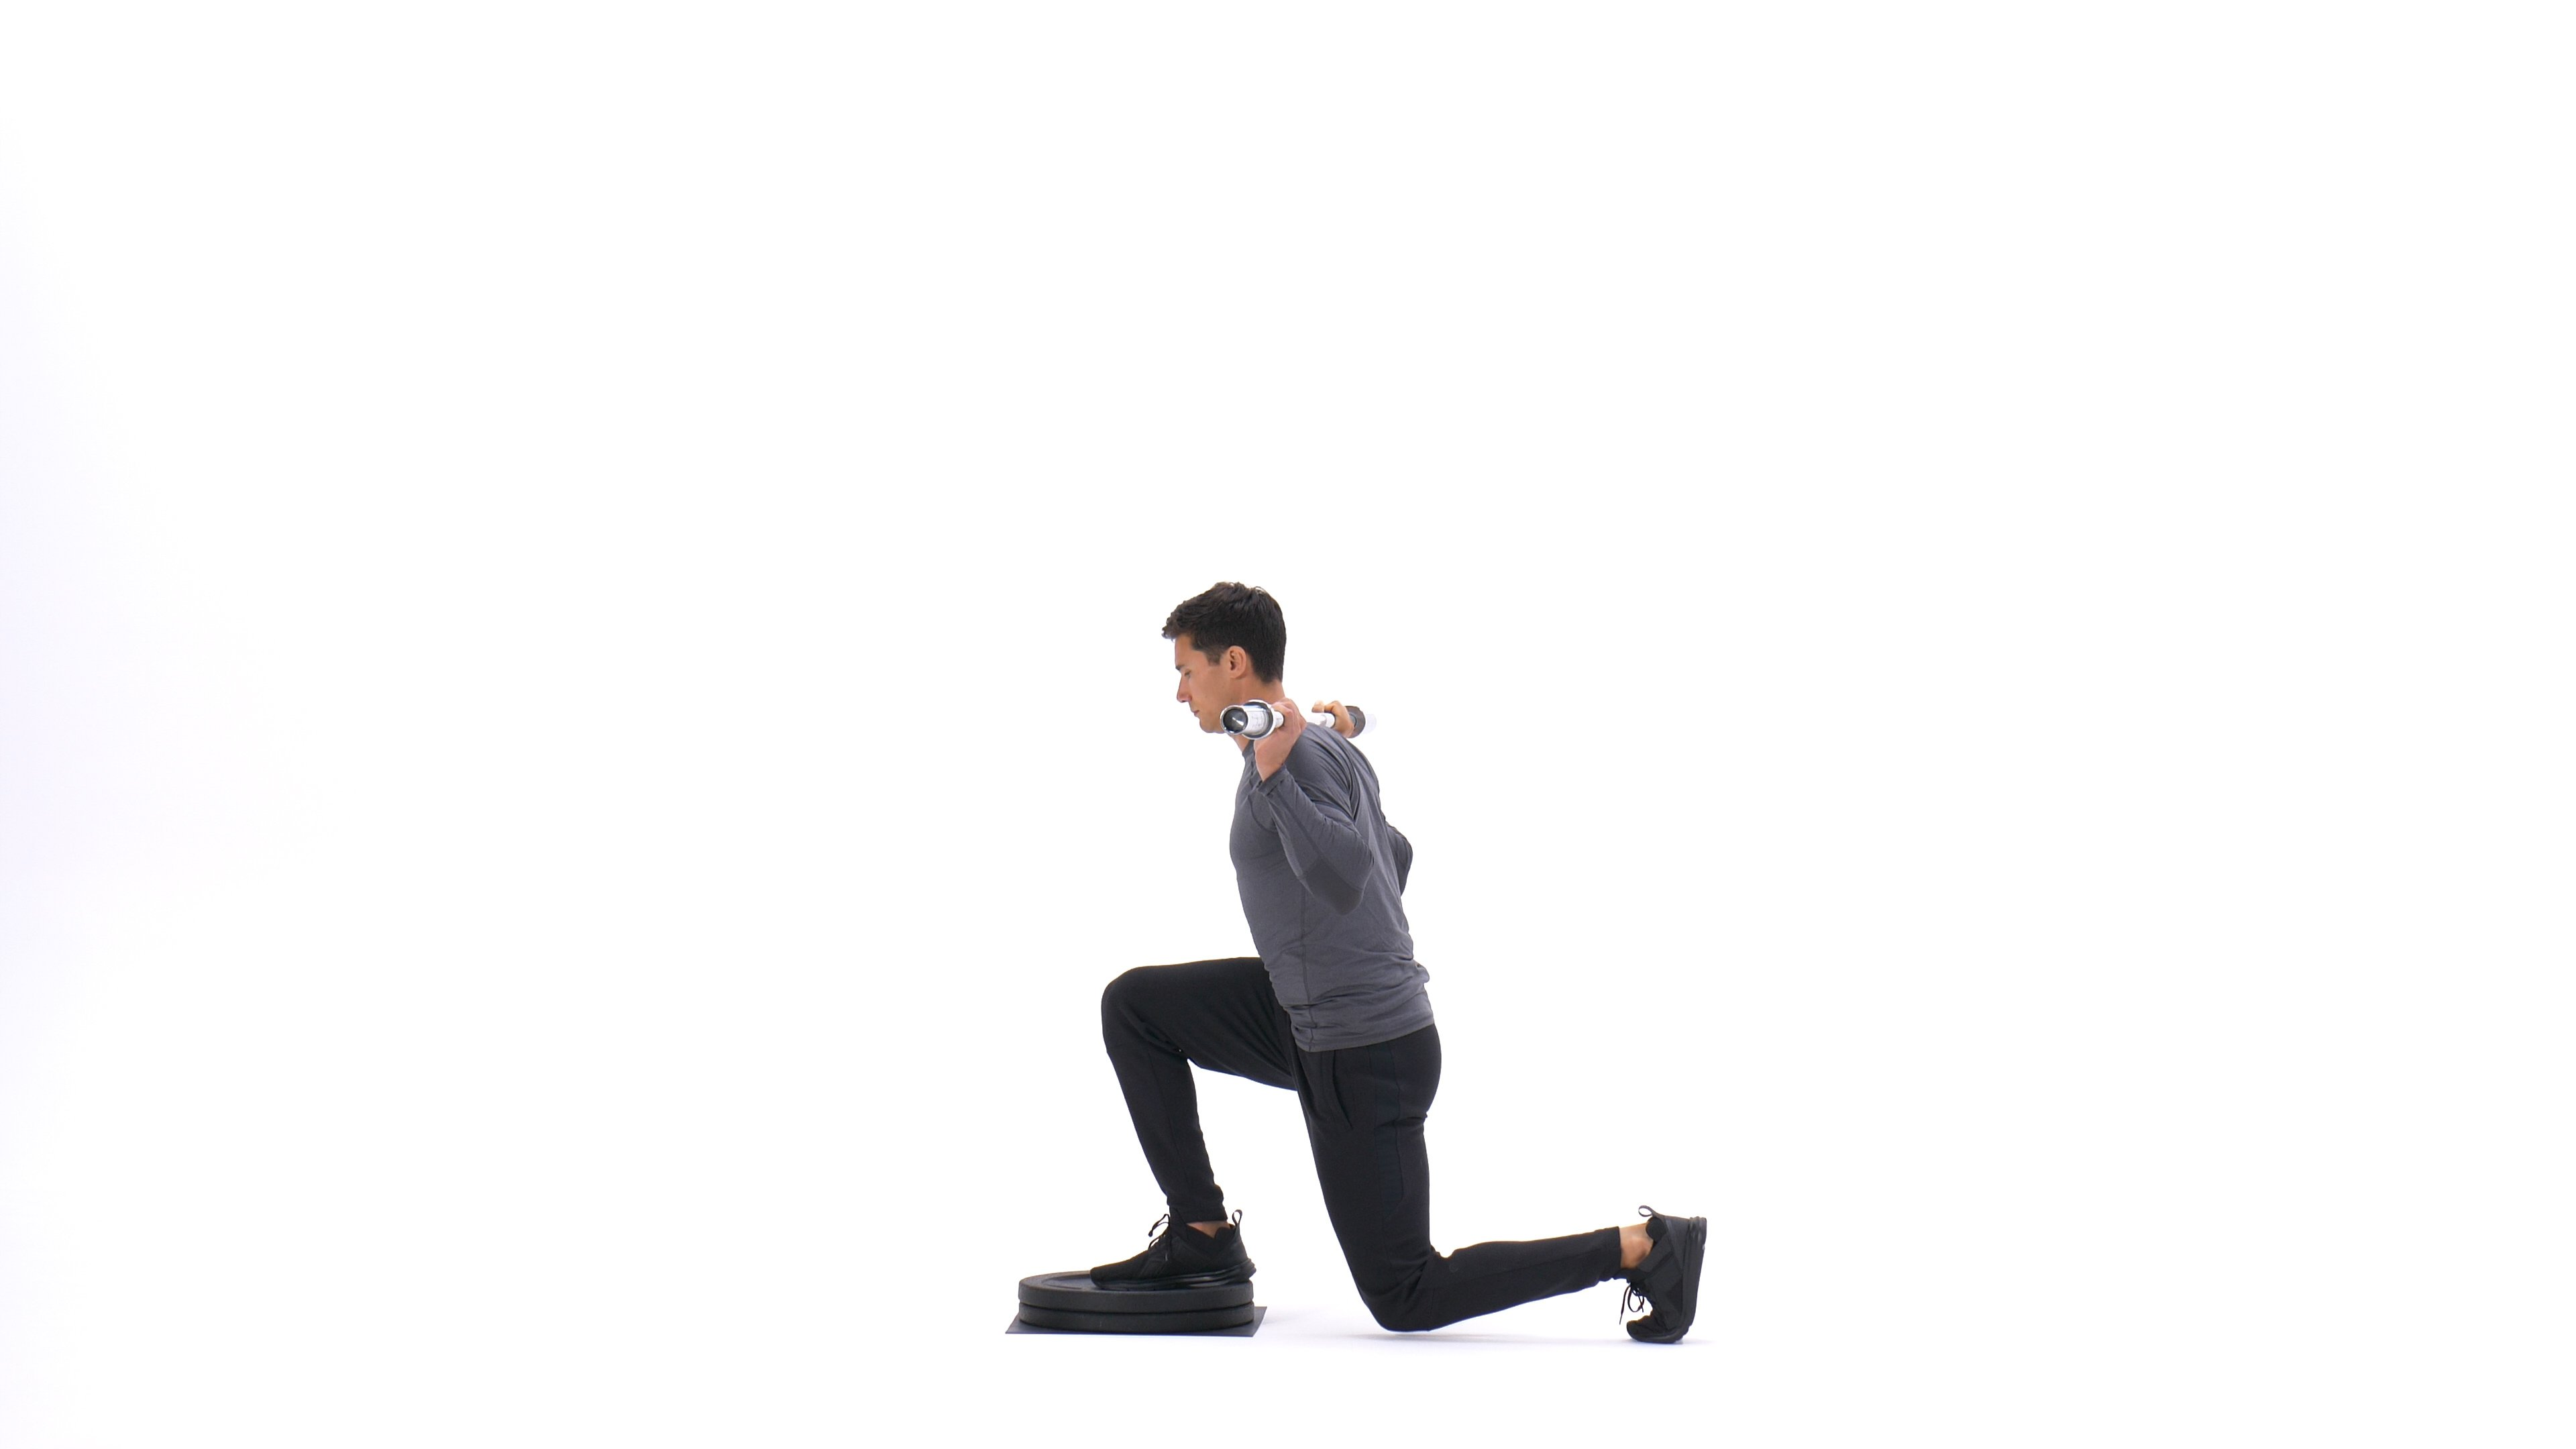 Barbell step-down reverse lunge image